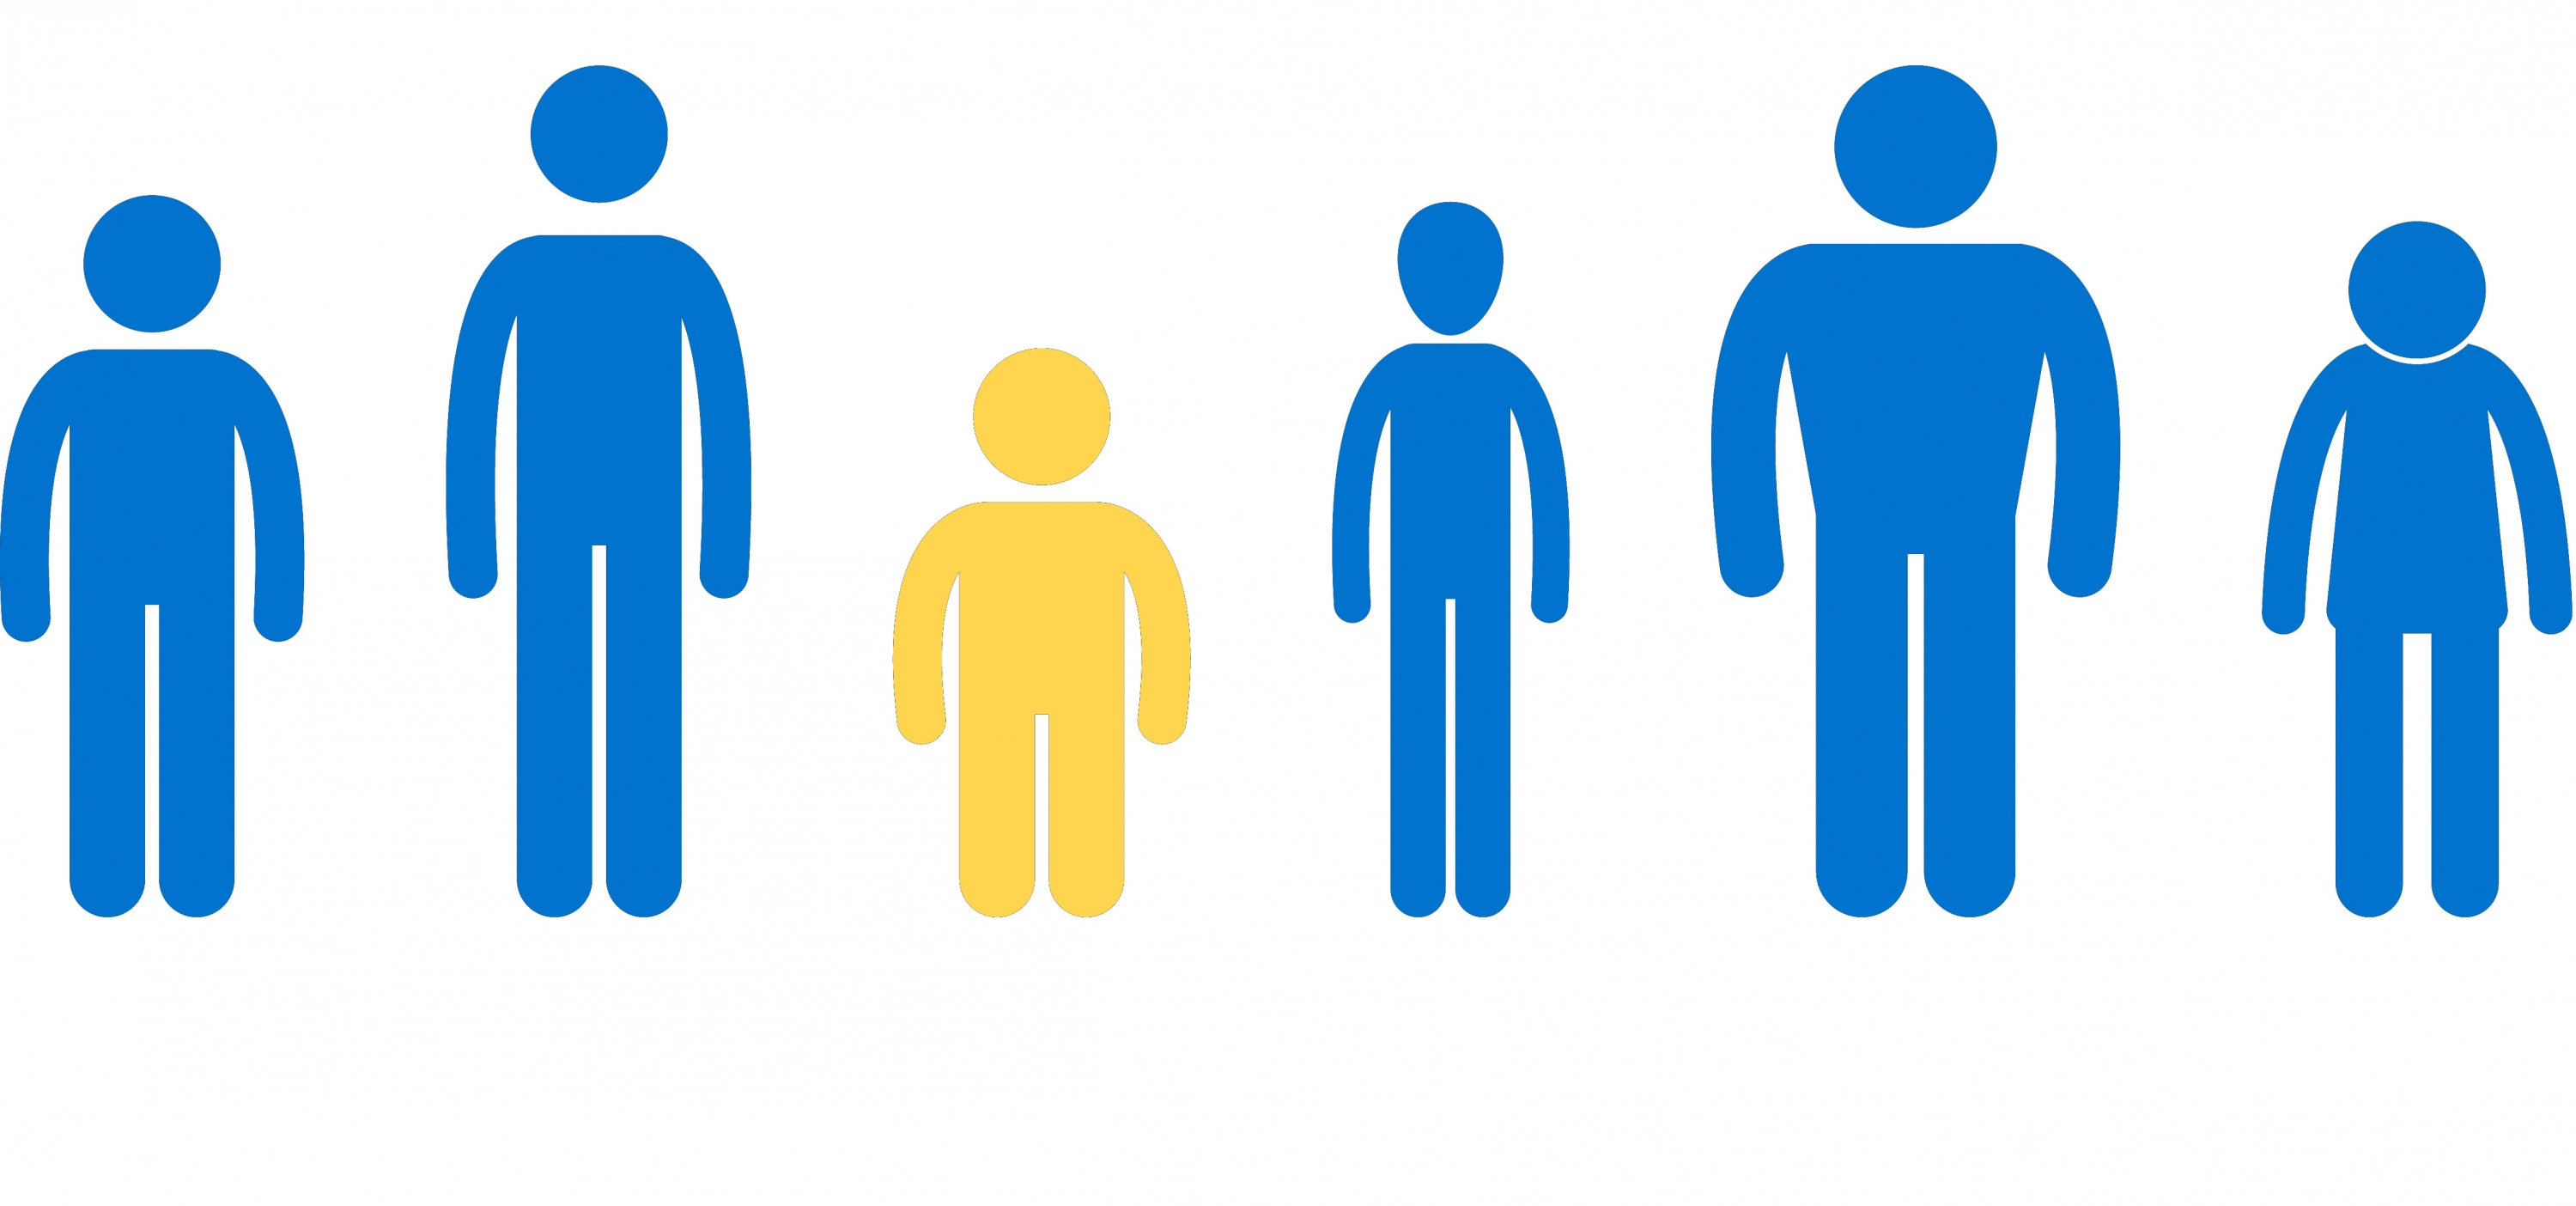 Stick figures in blue with the shortest figure highlighted in gold.